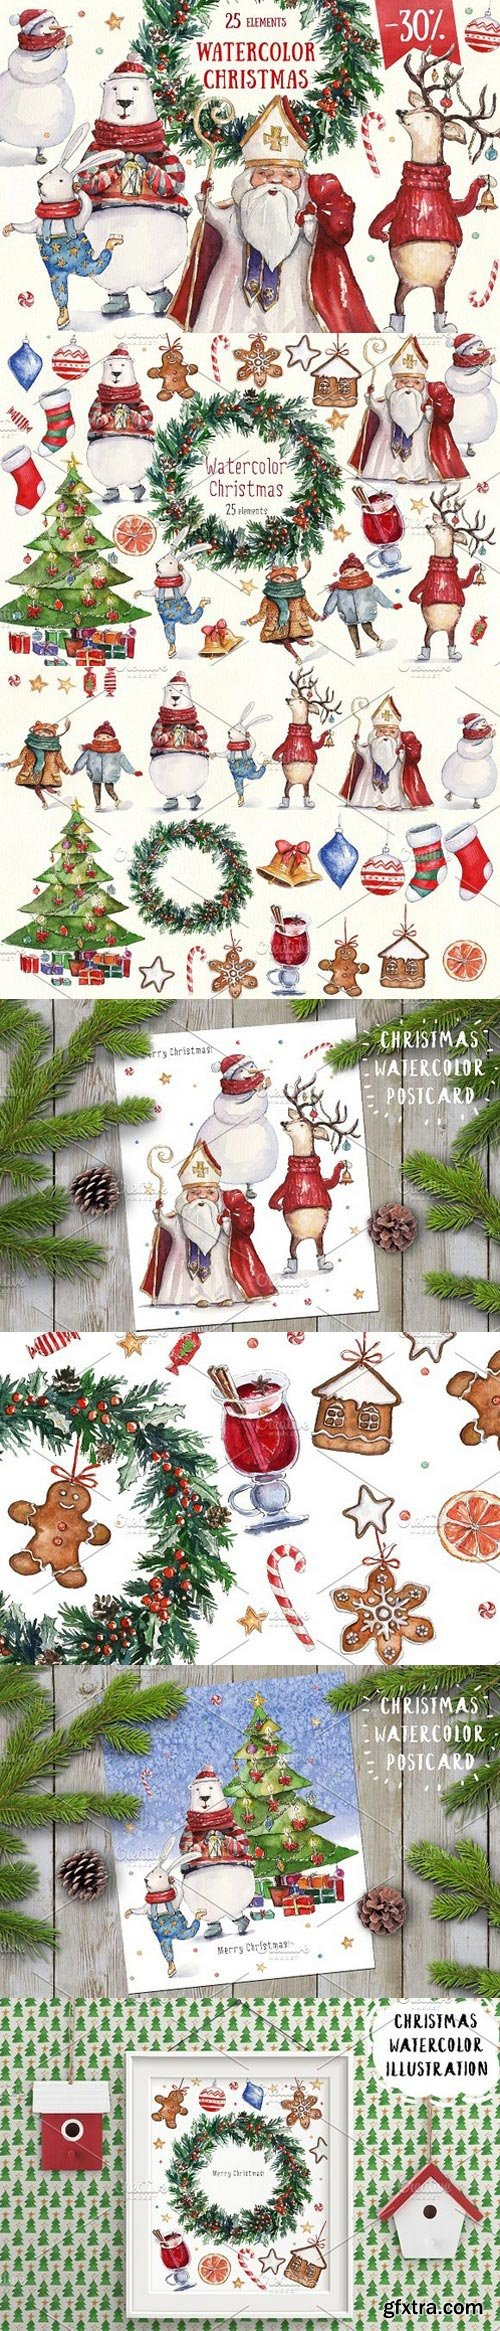 CM - Watercolor Christmas collection 1110723